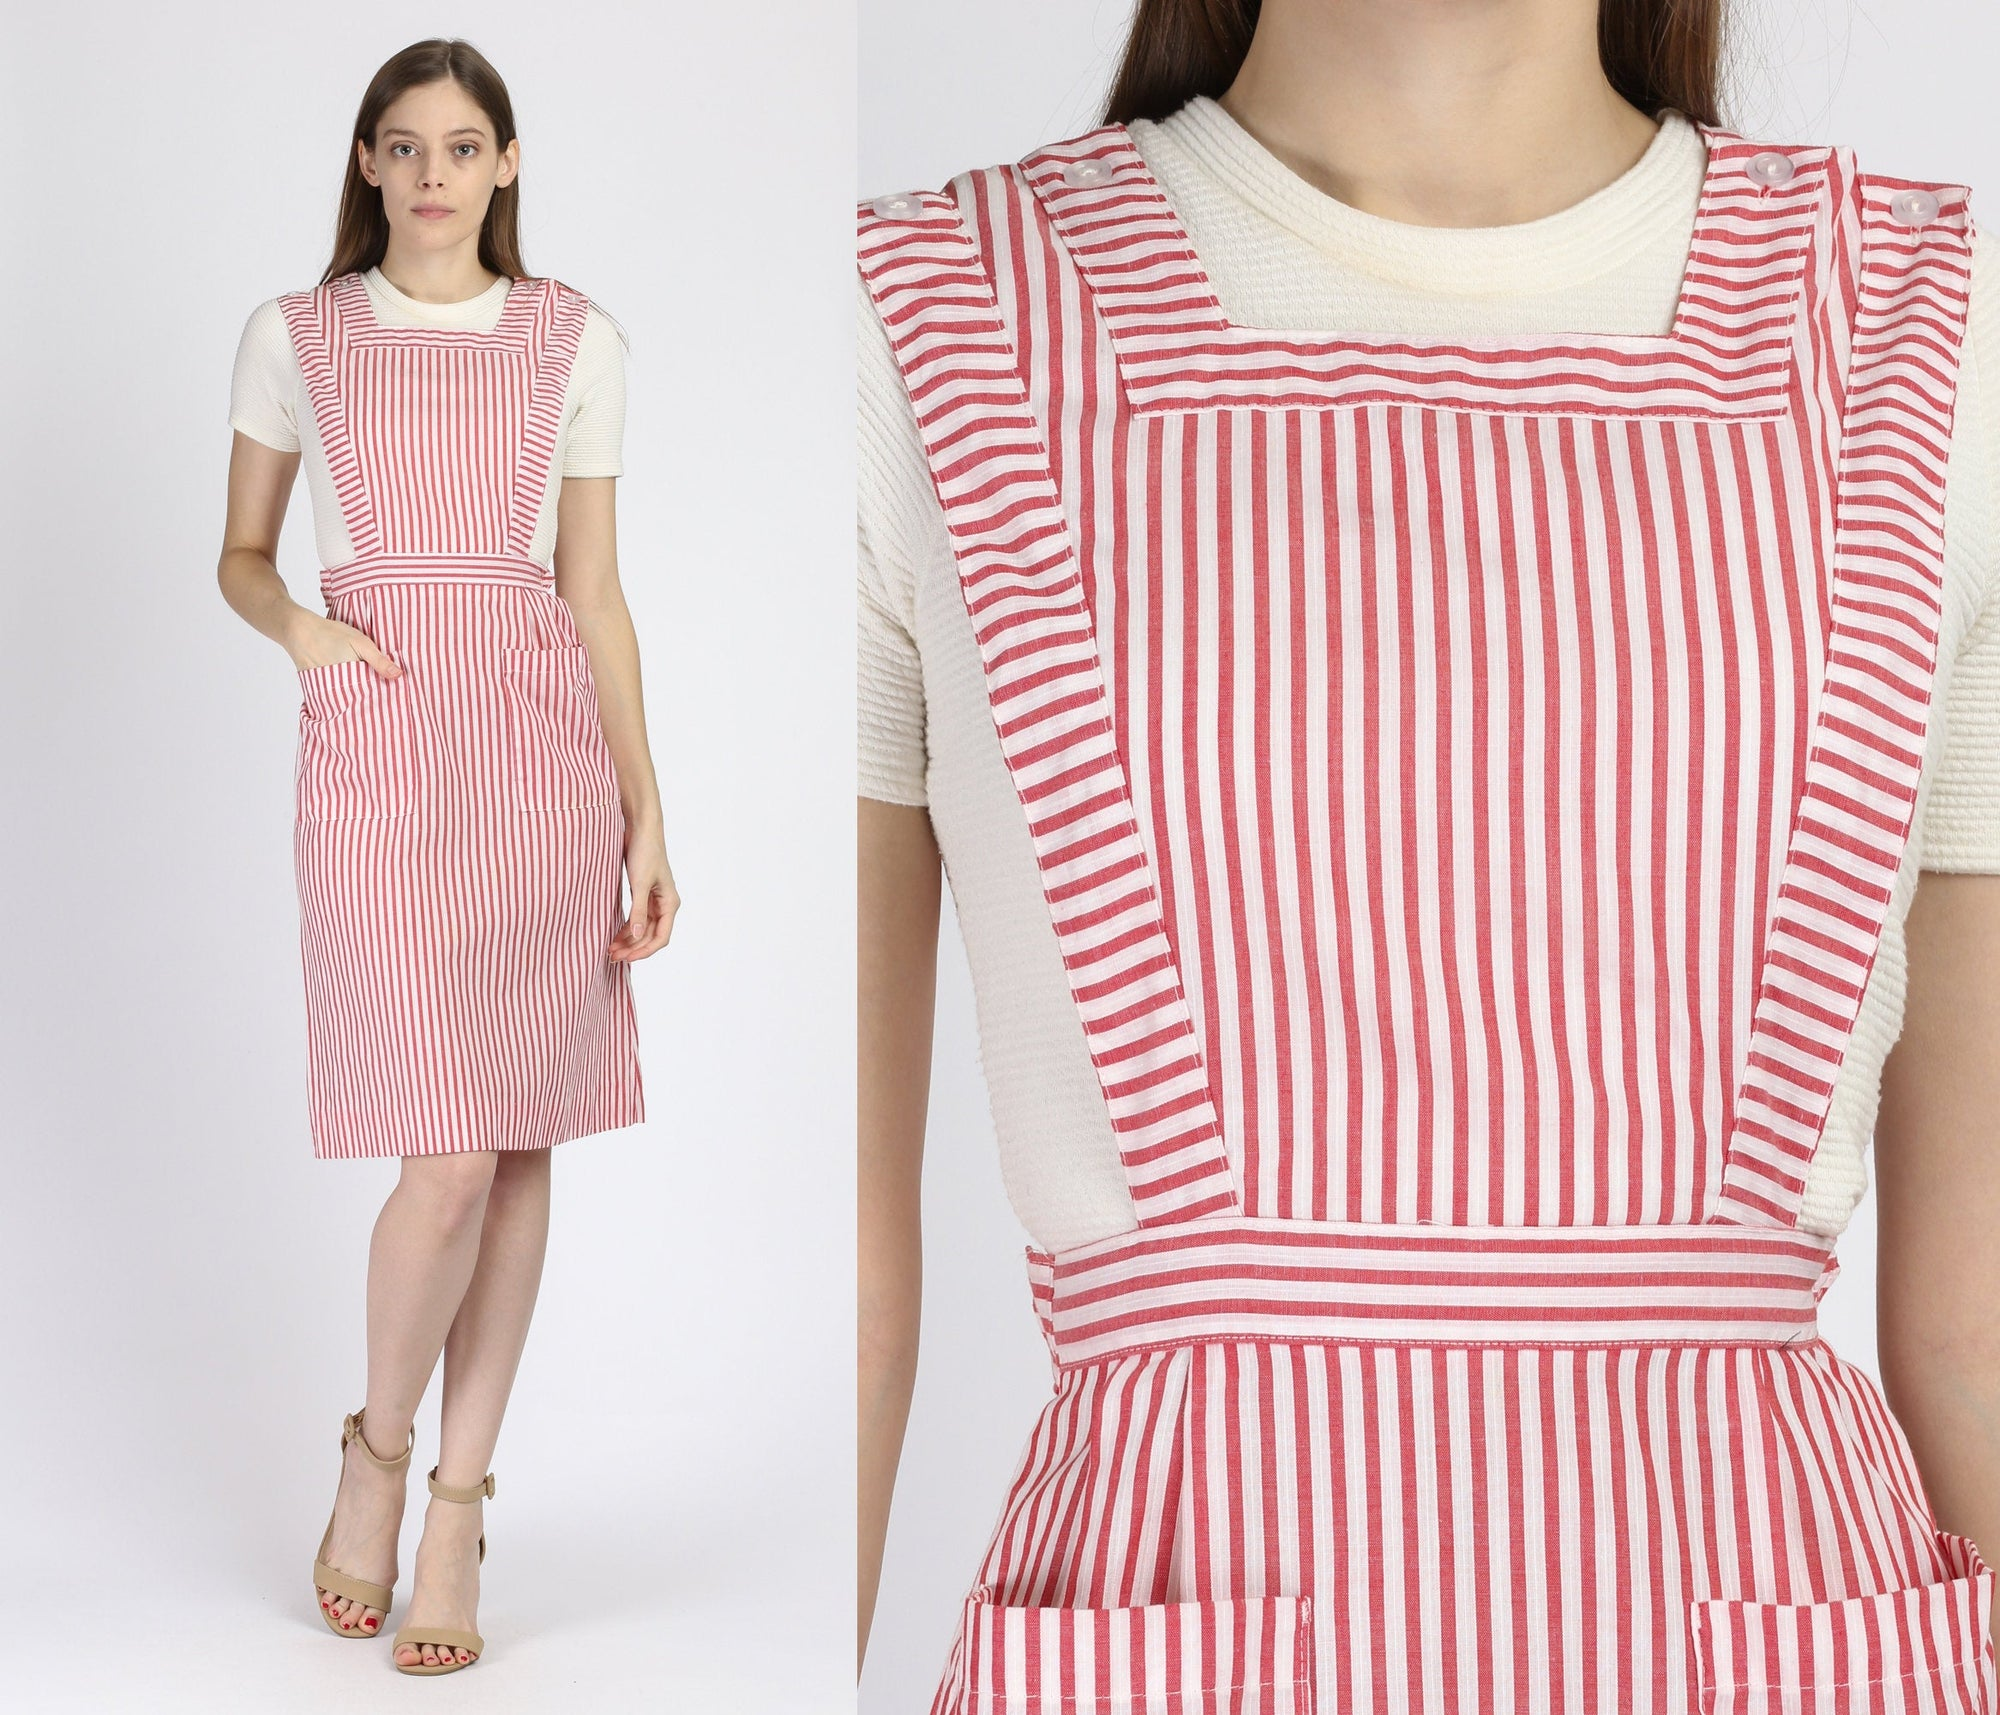 60s 70s Candy Striper Pinafore Nurse Dress - Extra Small